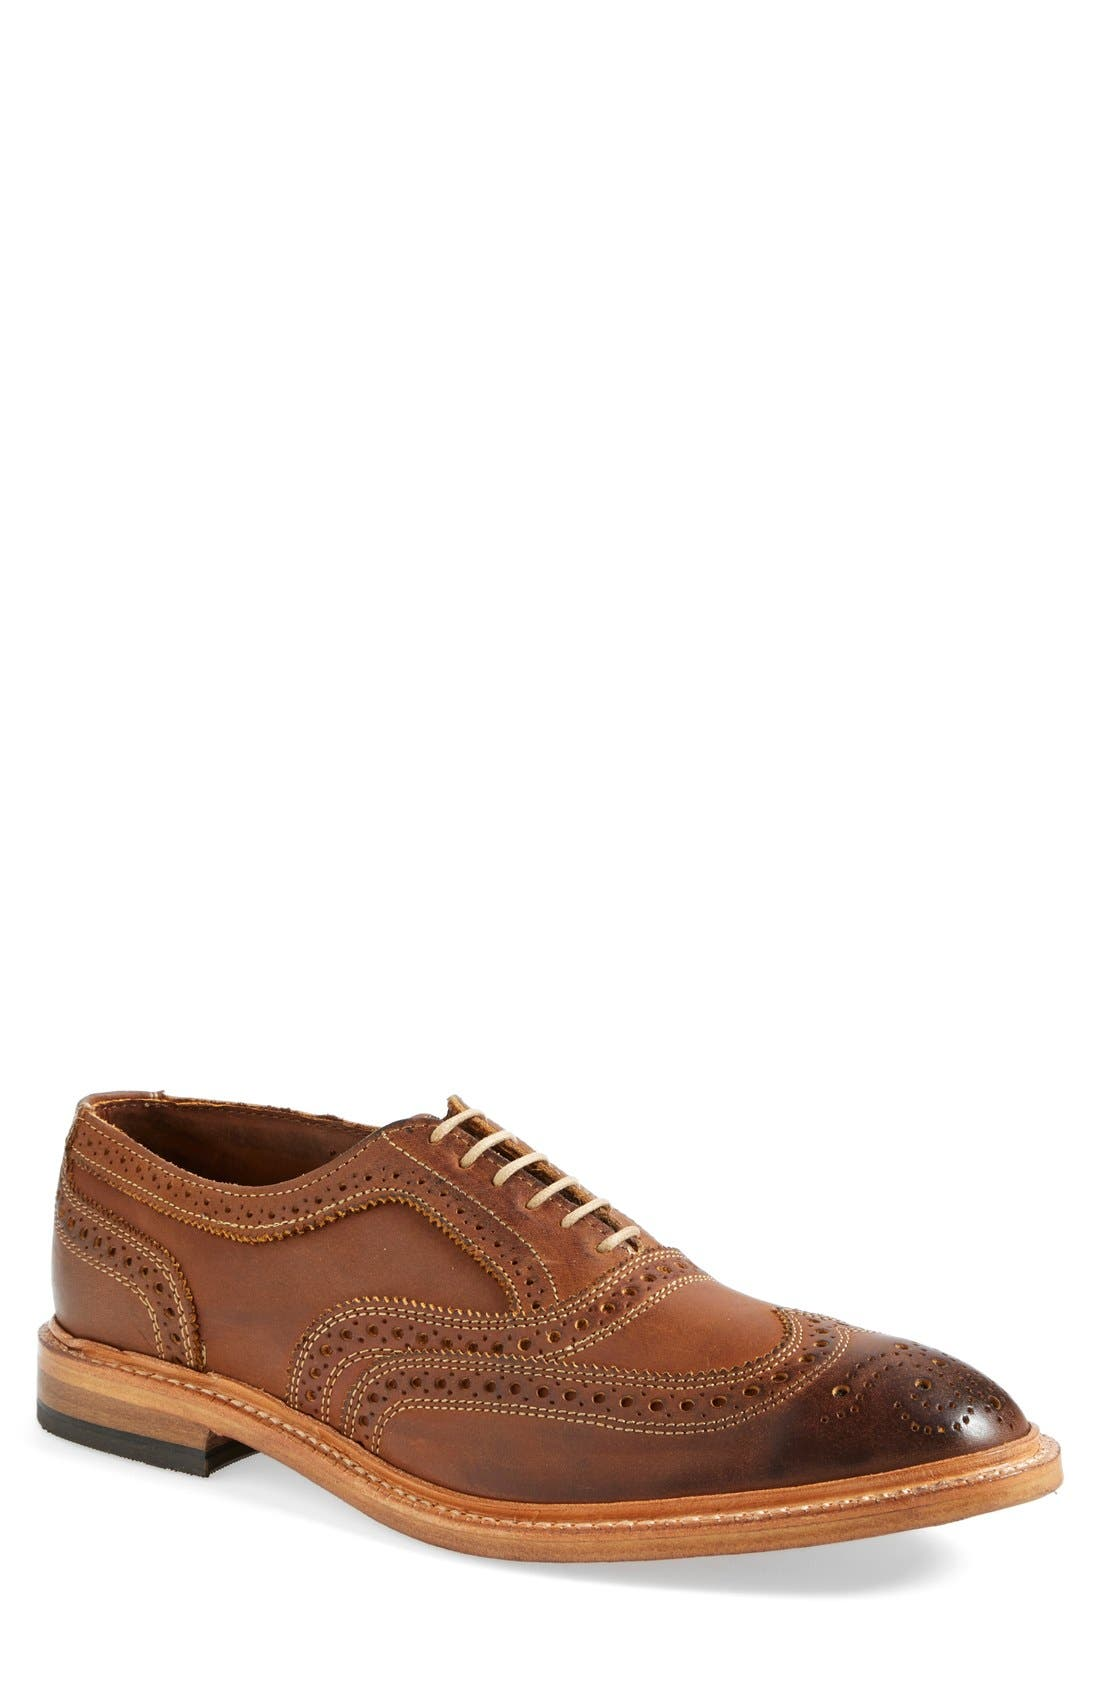 Alternate Image 1 Selected - Allen Edmonds 'Neumok' Wingtip (Men) (Nordstrom Exclusive)